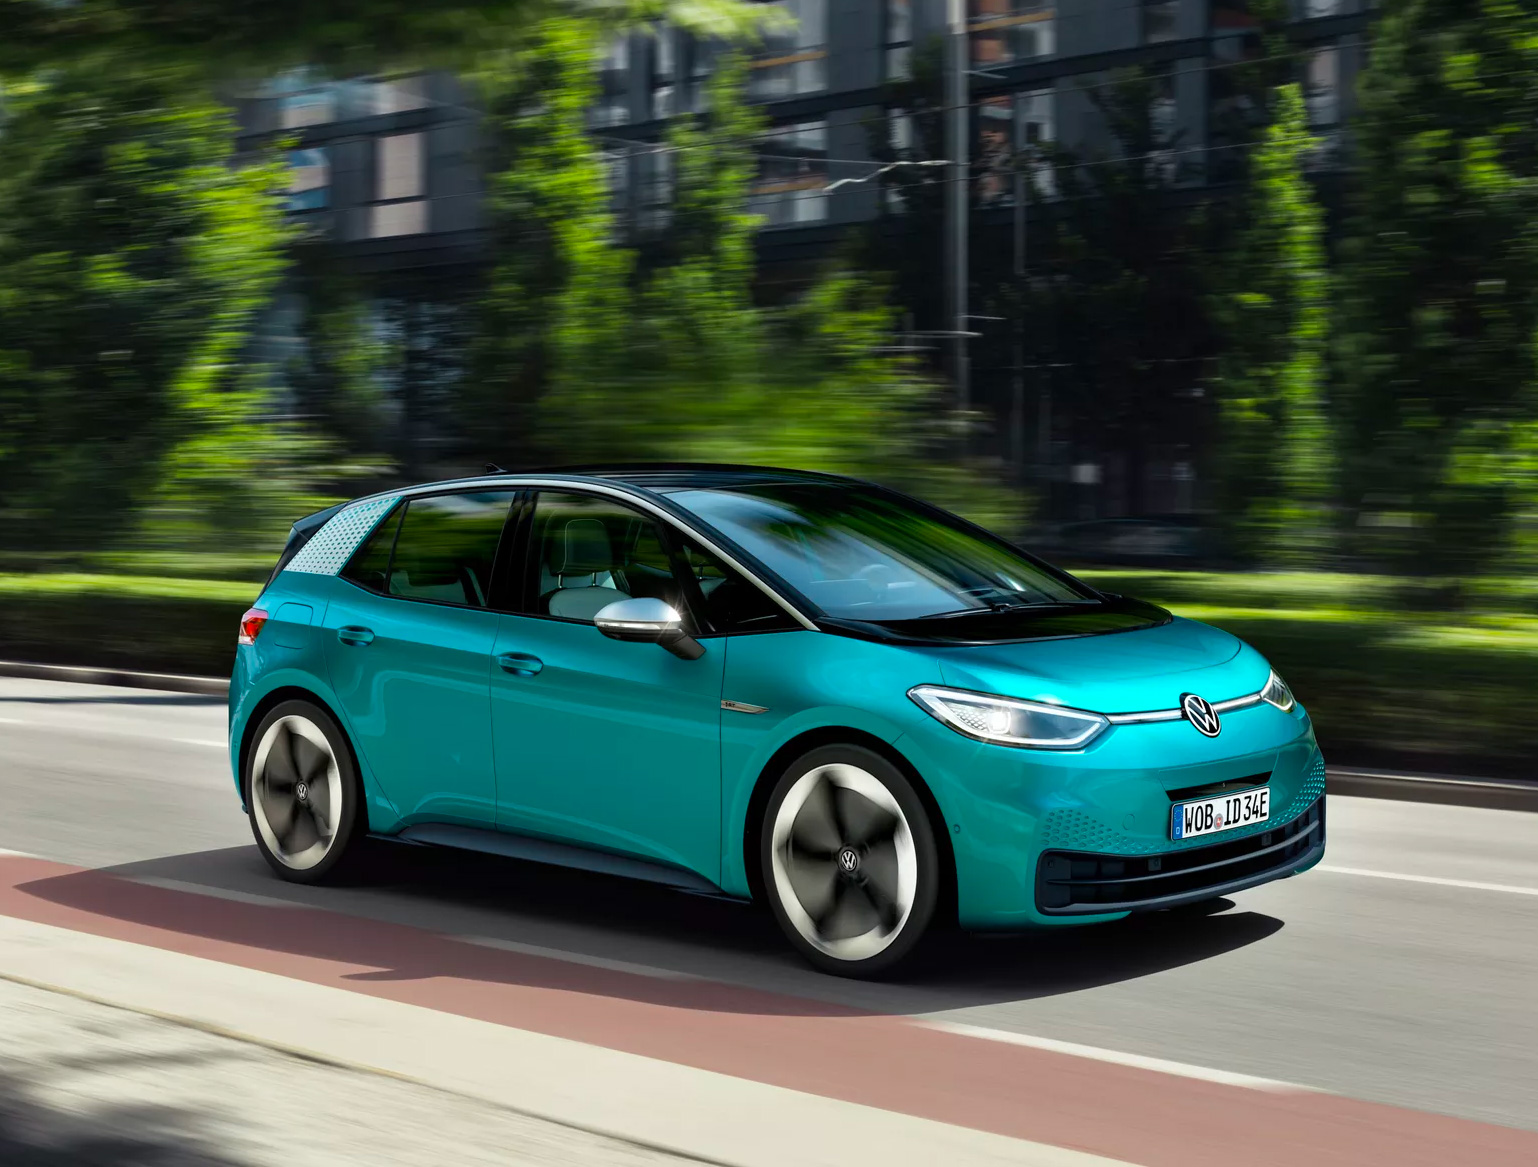 Volkwagen Introduces ID.3, Its First All-Electric Car at werd.com